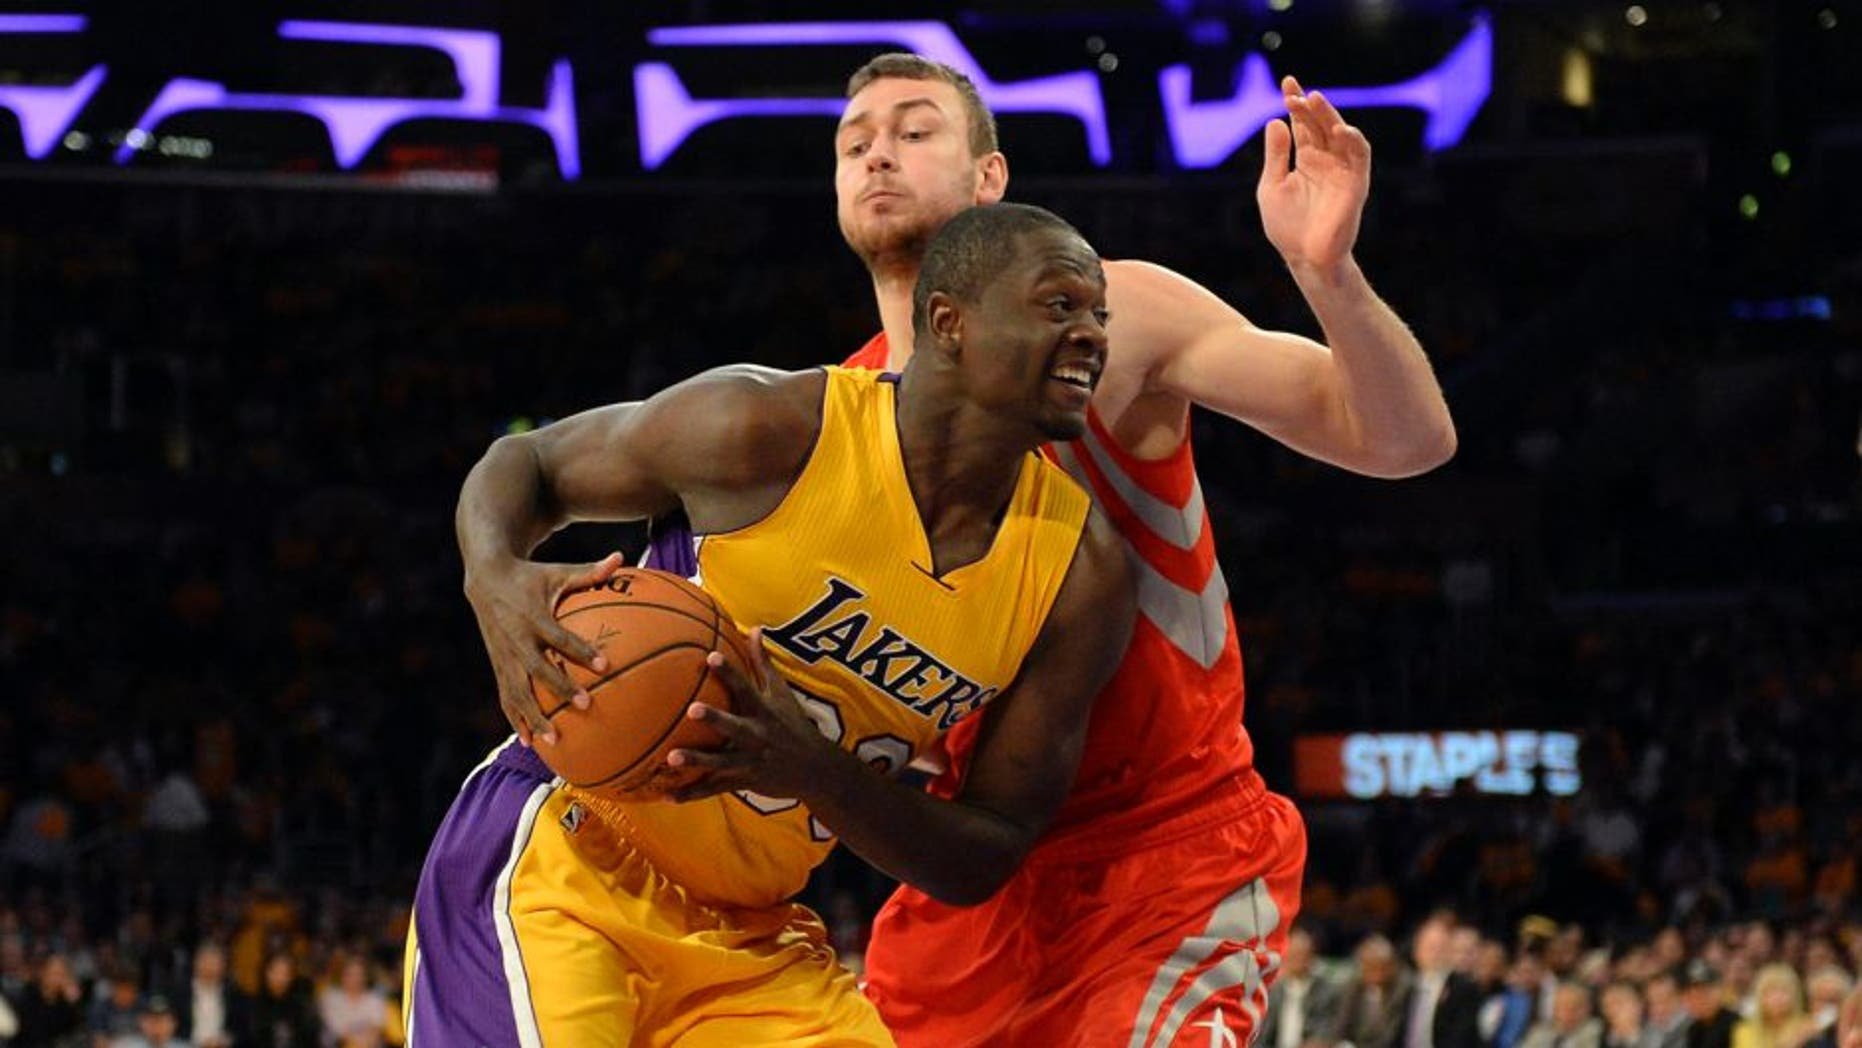 Oct 28, 2014; Los Angeles, CA, USA; Los Angeles Lakers forward Julius Randle (30) drives against Houston Rockets forward Donatas Motiejunas (20) during the second half at Staples Center. Mandatory Credit: Richard Mackson-USA TODAY Sports